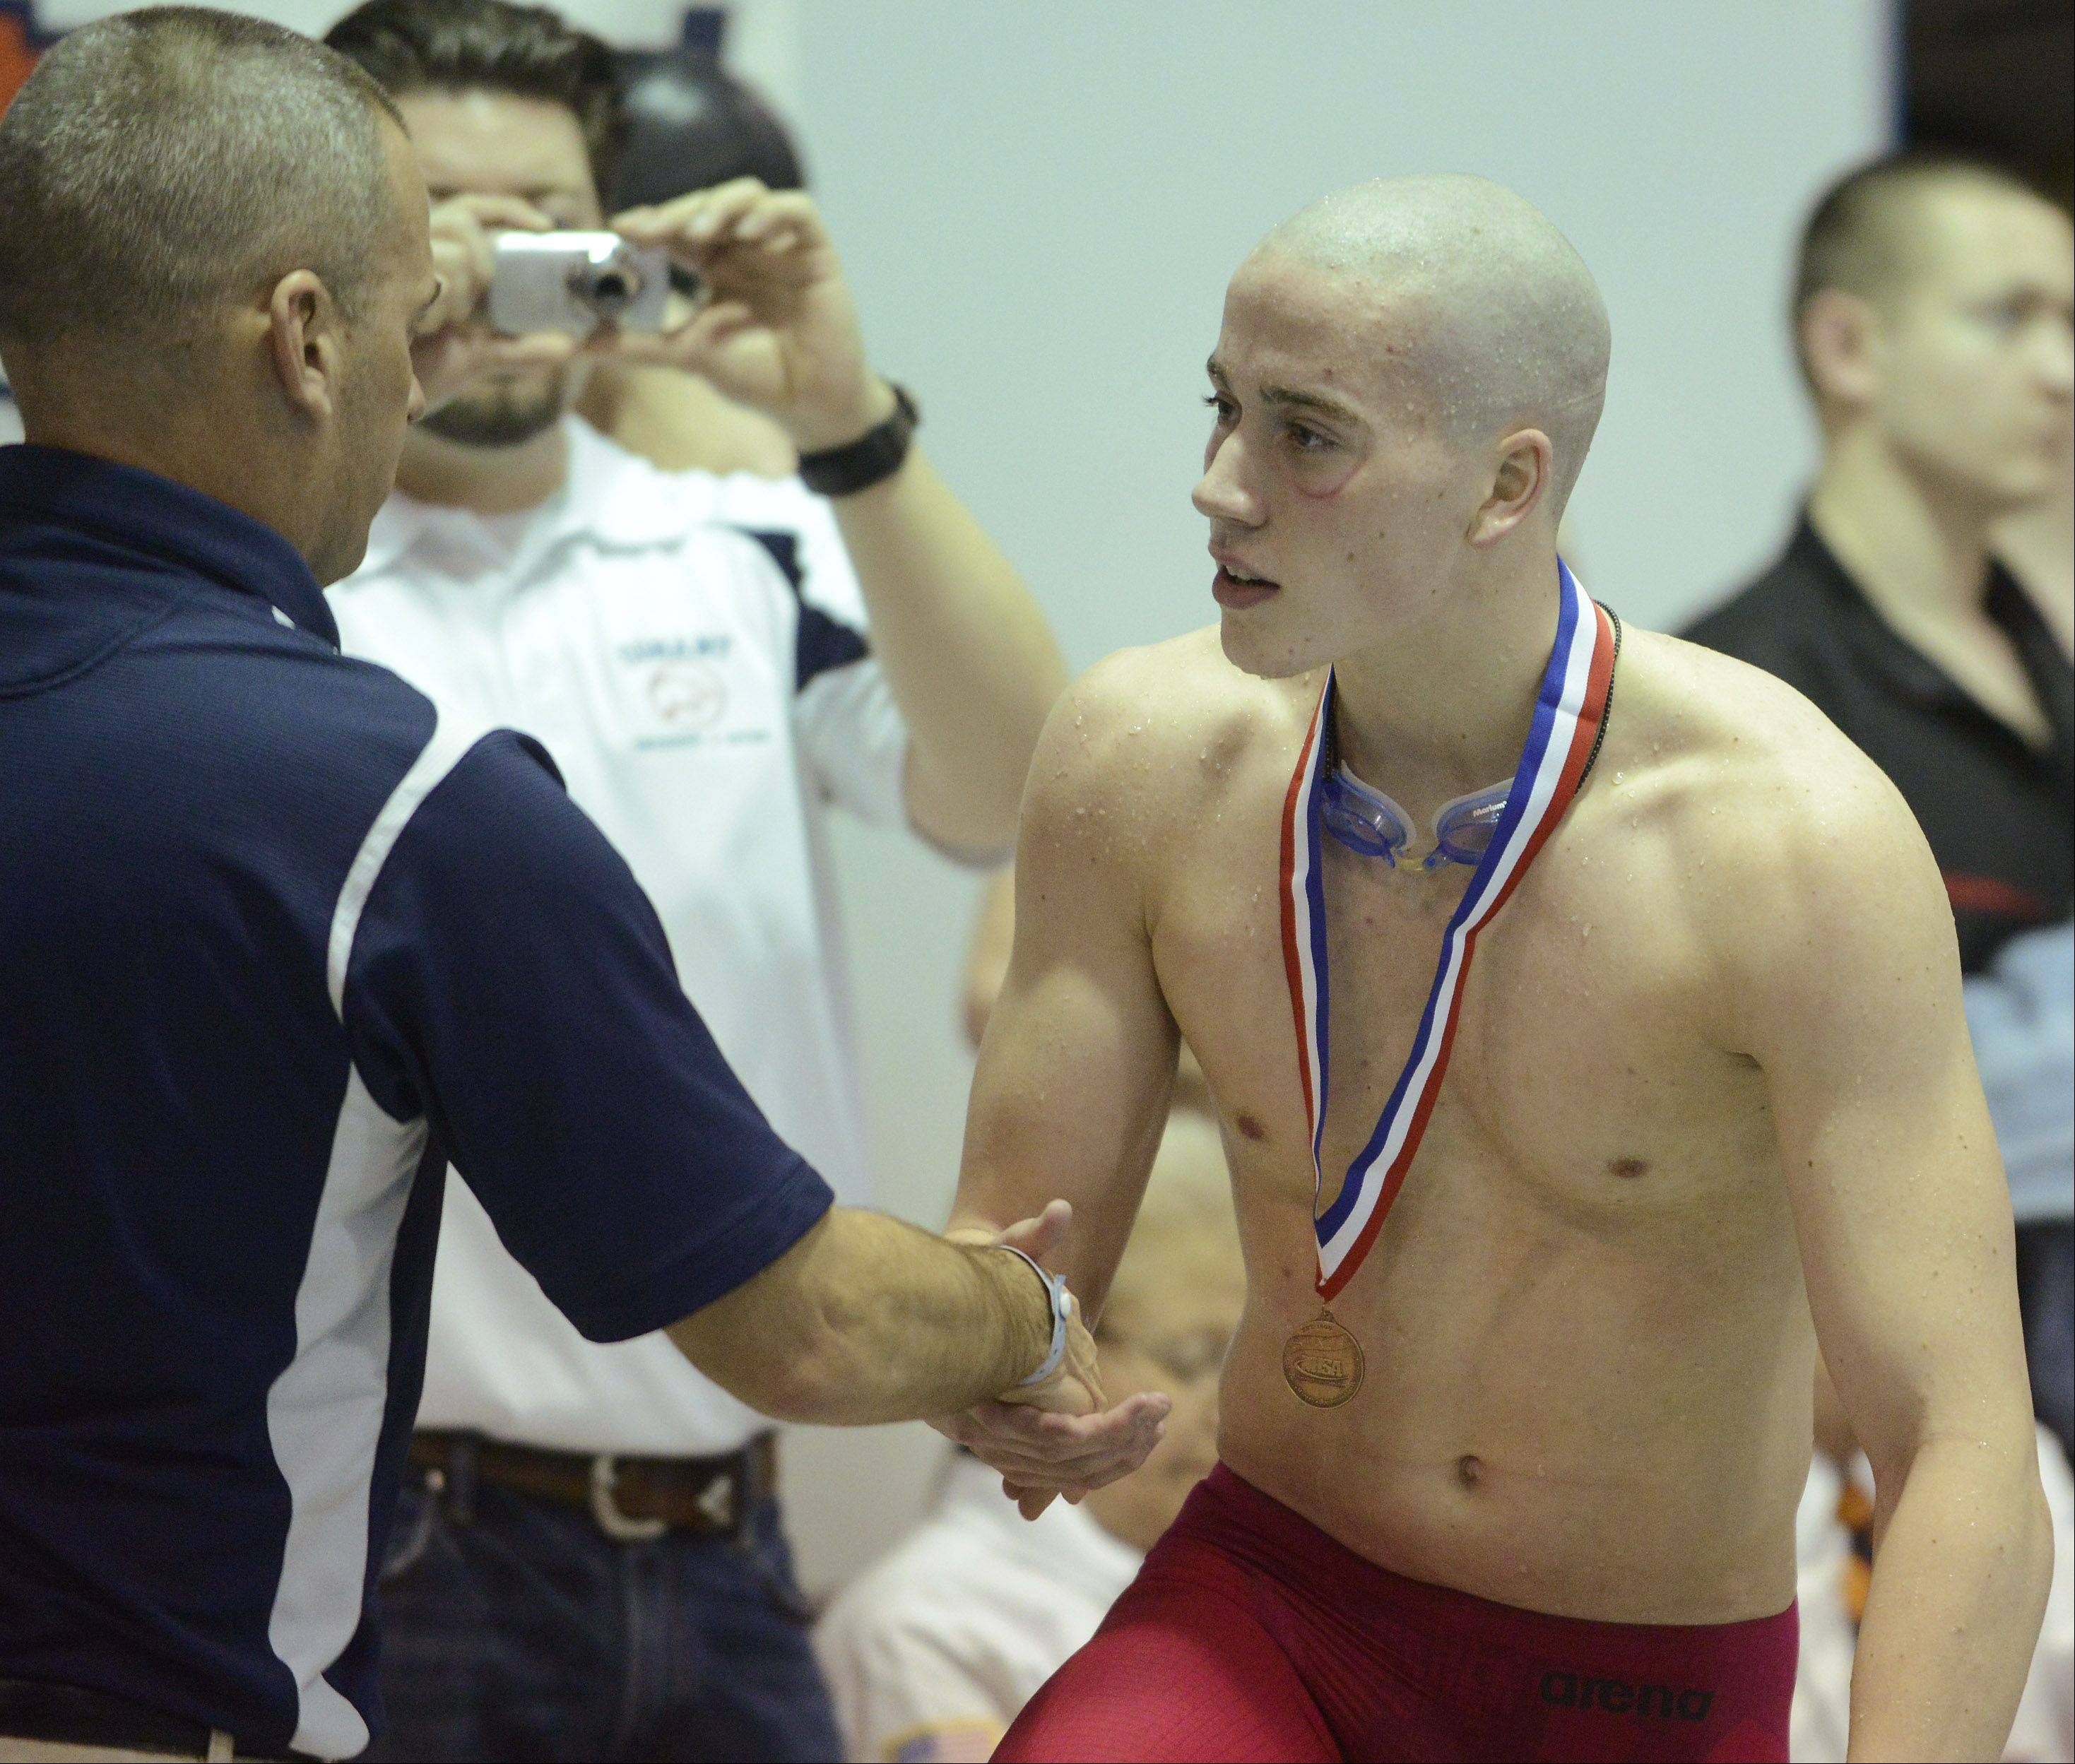 Conant's Jonathon Burke receives his medal after finishing third in the 500-yard freestyle during the state finals at New Trier High School in Winnetka on Saturday.